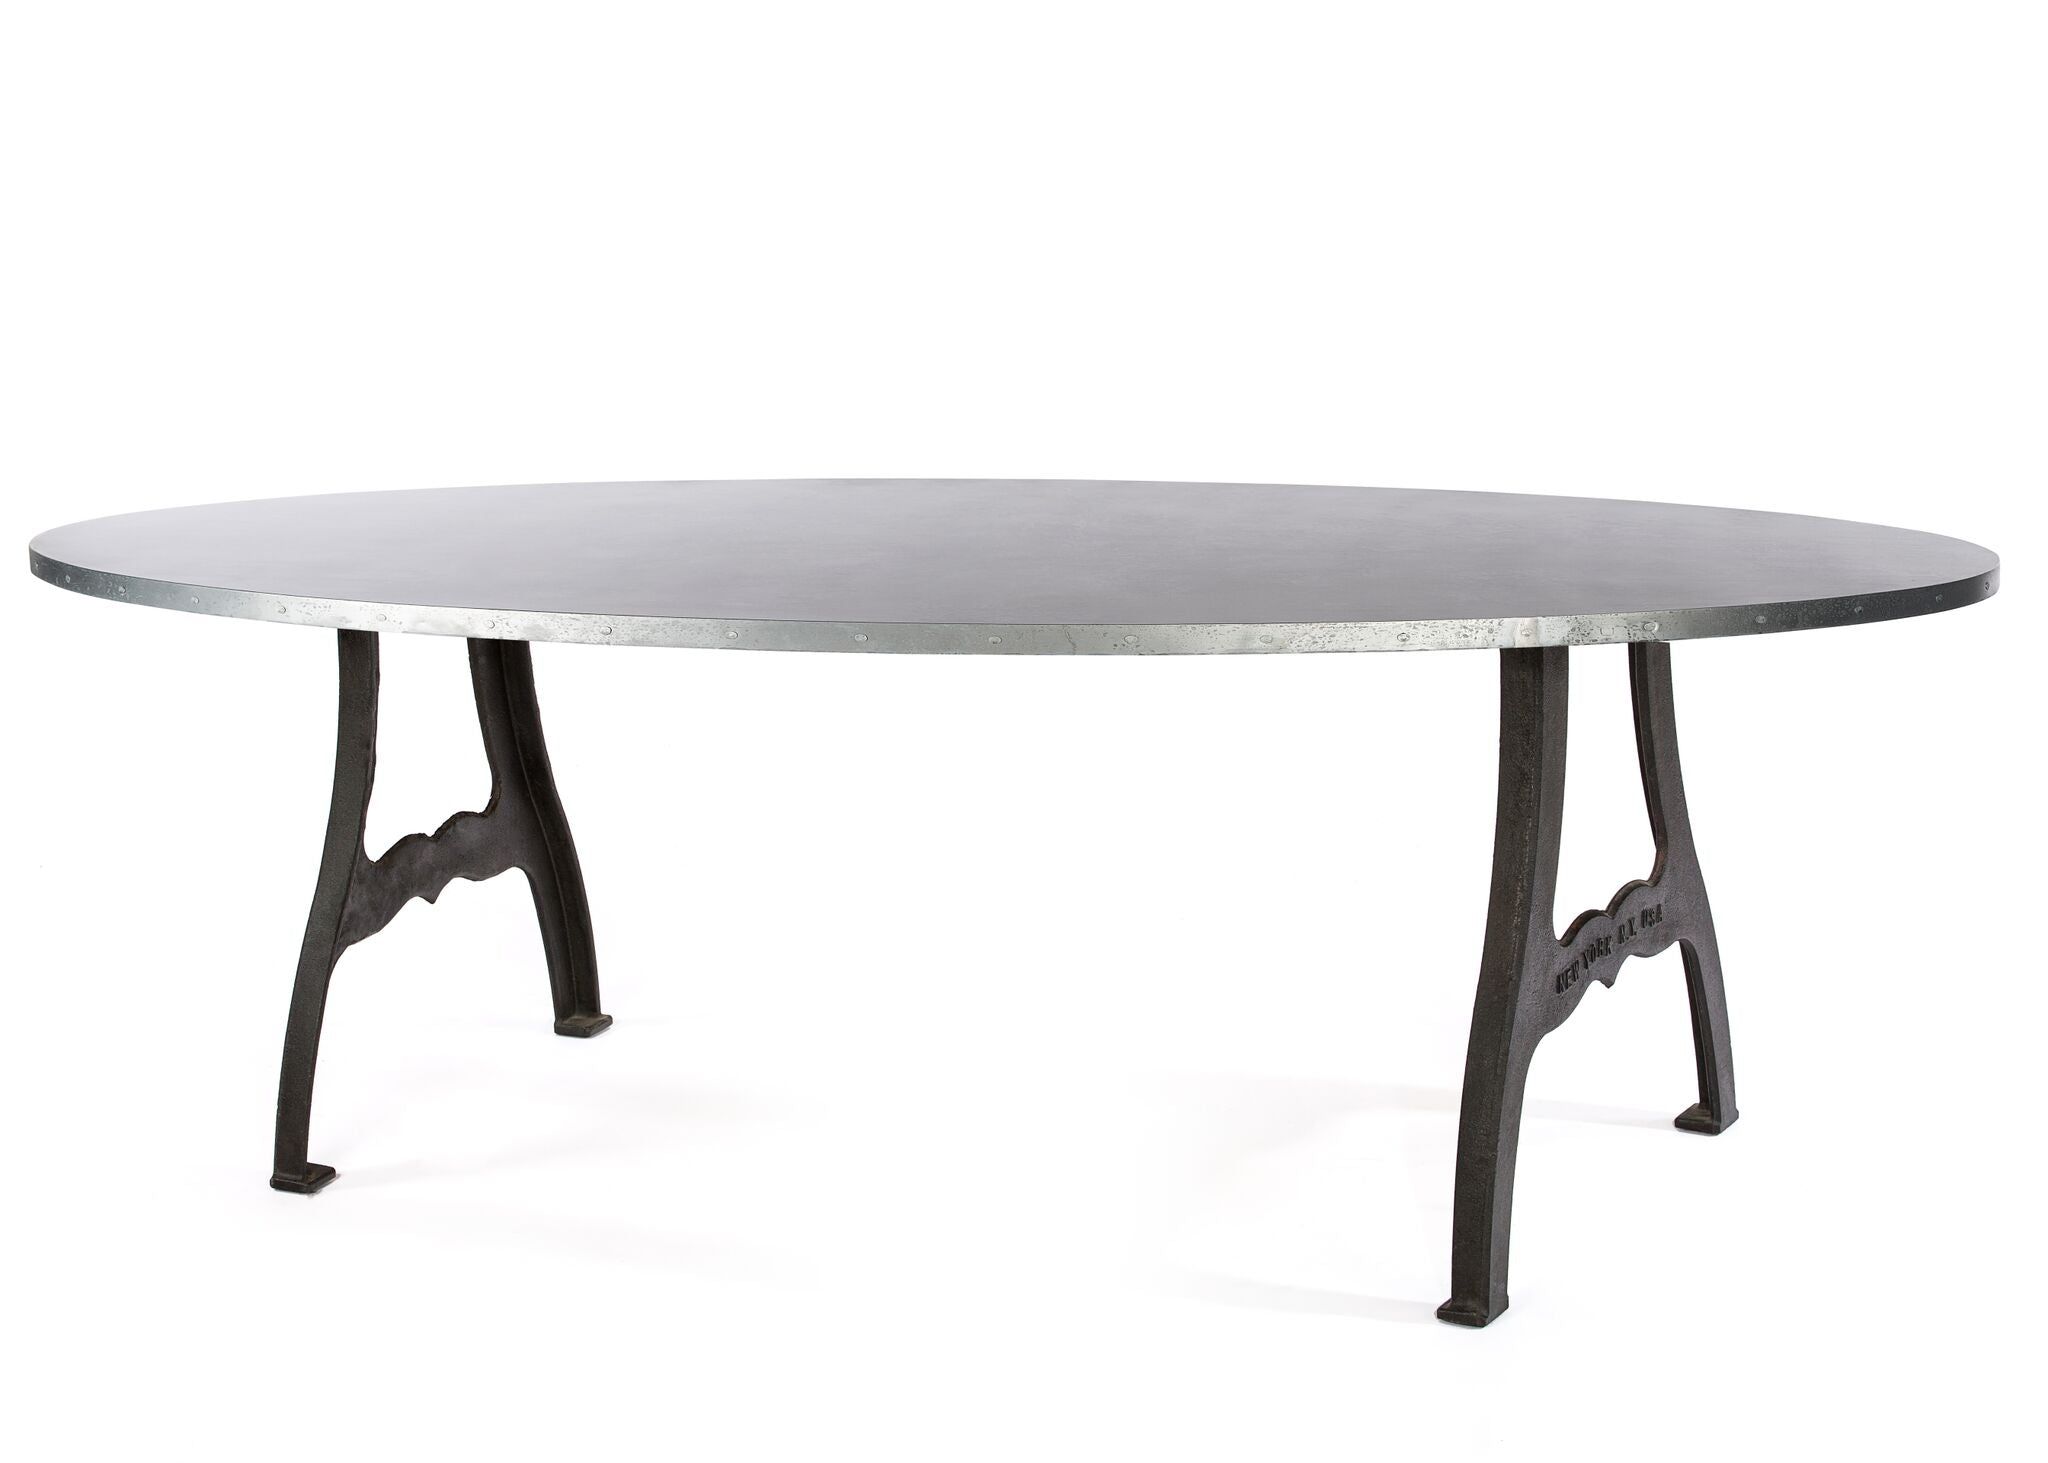 "Zinc Oval Tables | Williamsburg Table | CLASSIC | Natural Iron | CUSTOM SIZE 60""L 37""W 30""H 